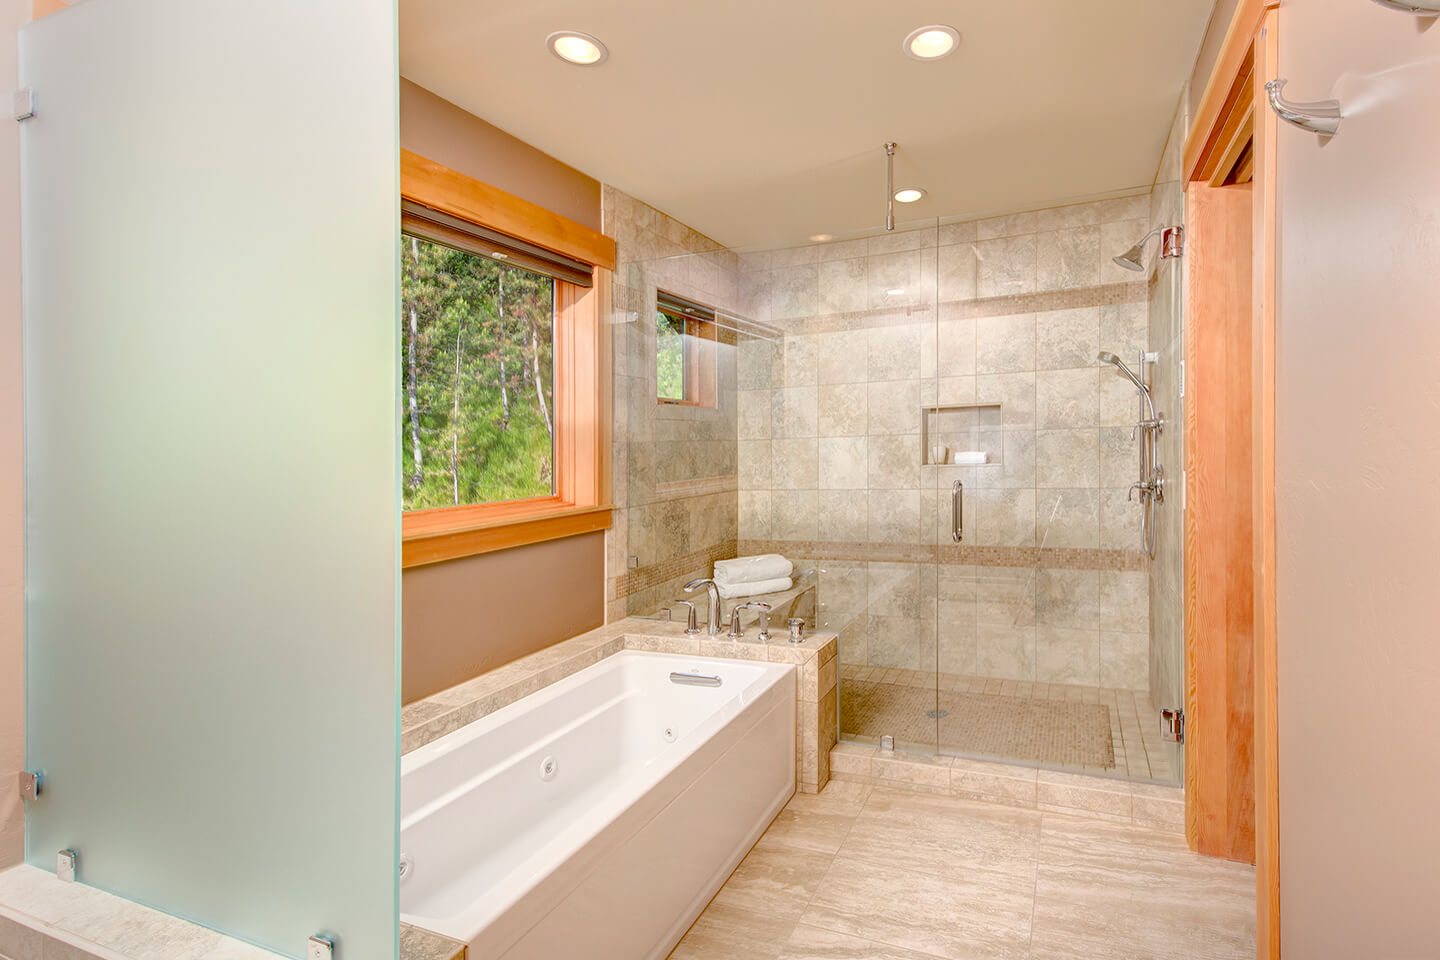 Bathroom with stone and glass elements